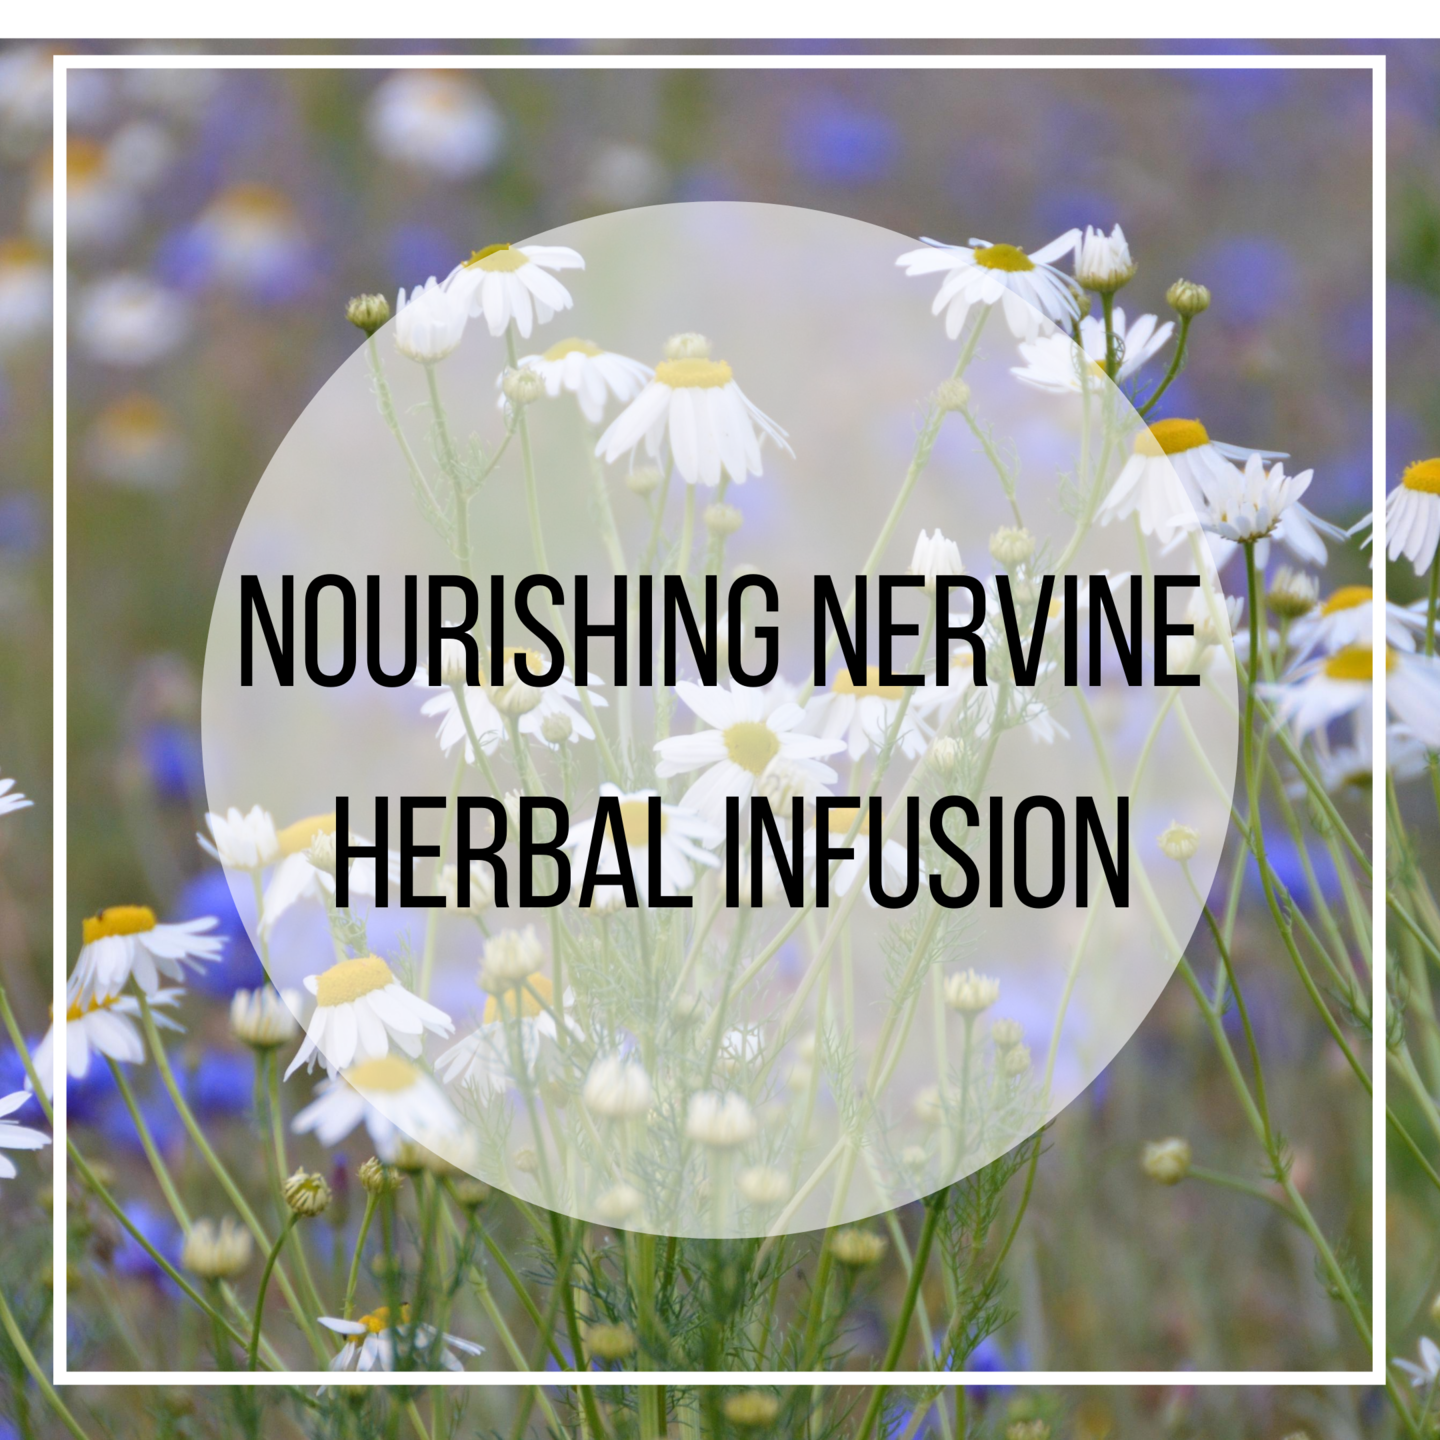 oatstraw, chamomile, linden, nettle herbs for the nervous system